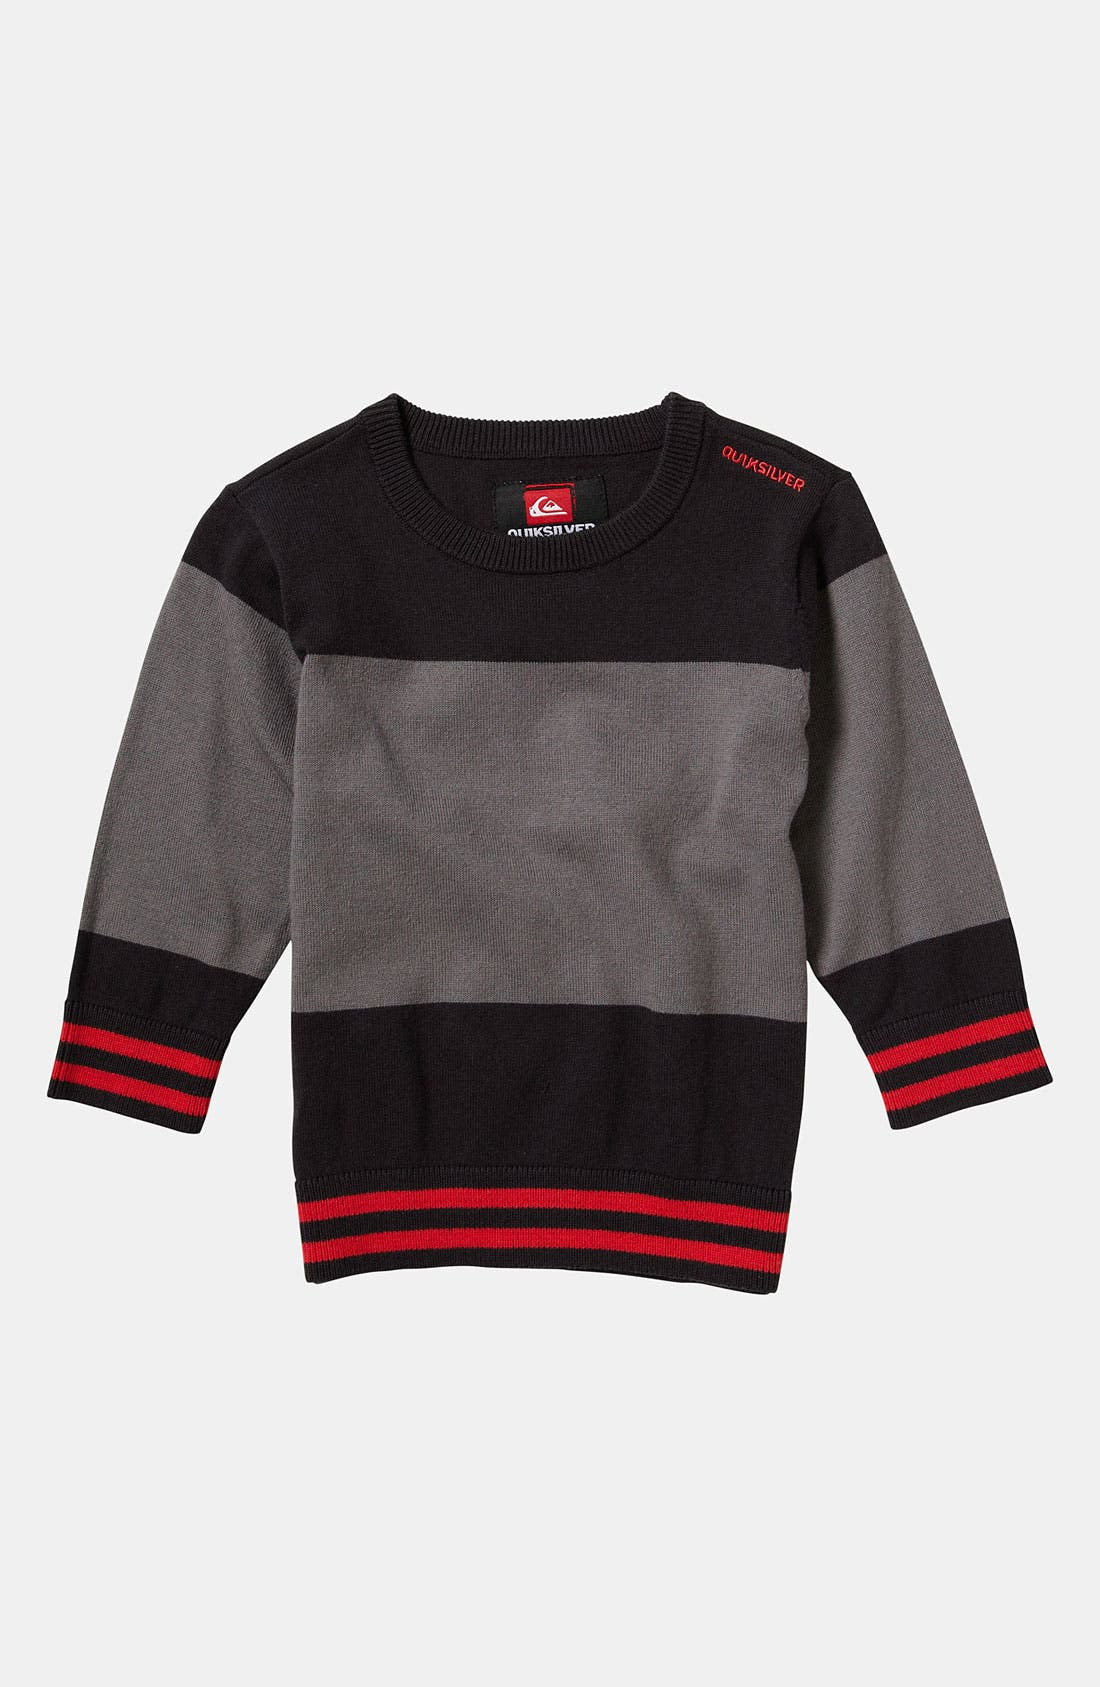 Main Image - Quiksilver 'Wild Card' Sweater (Toddler)